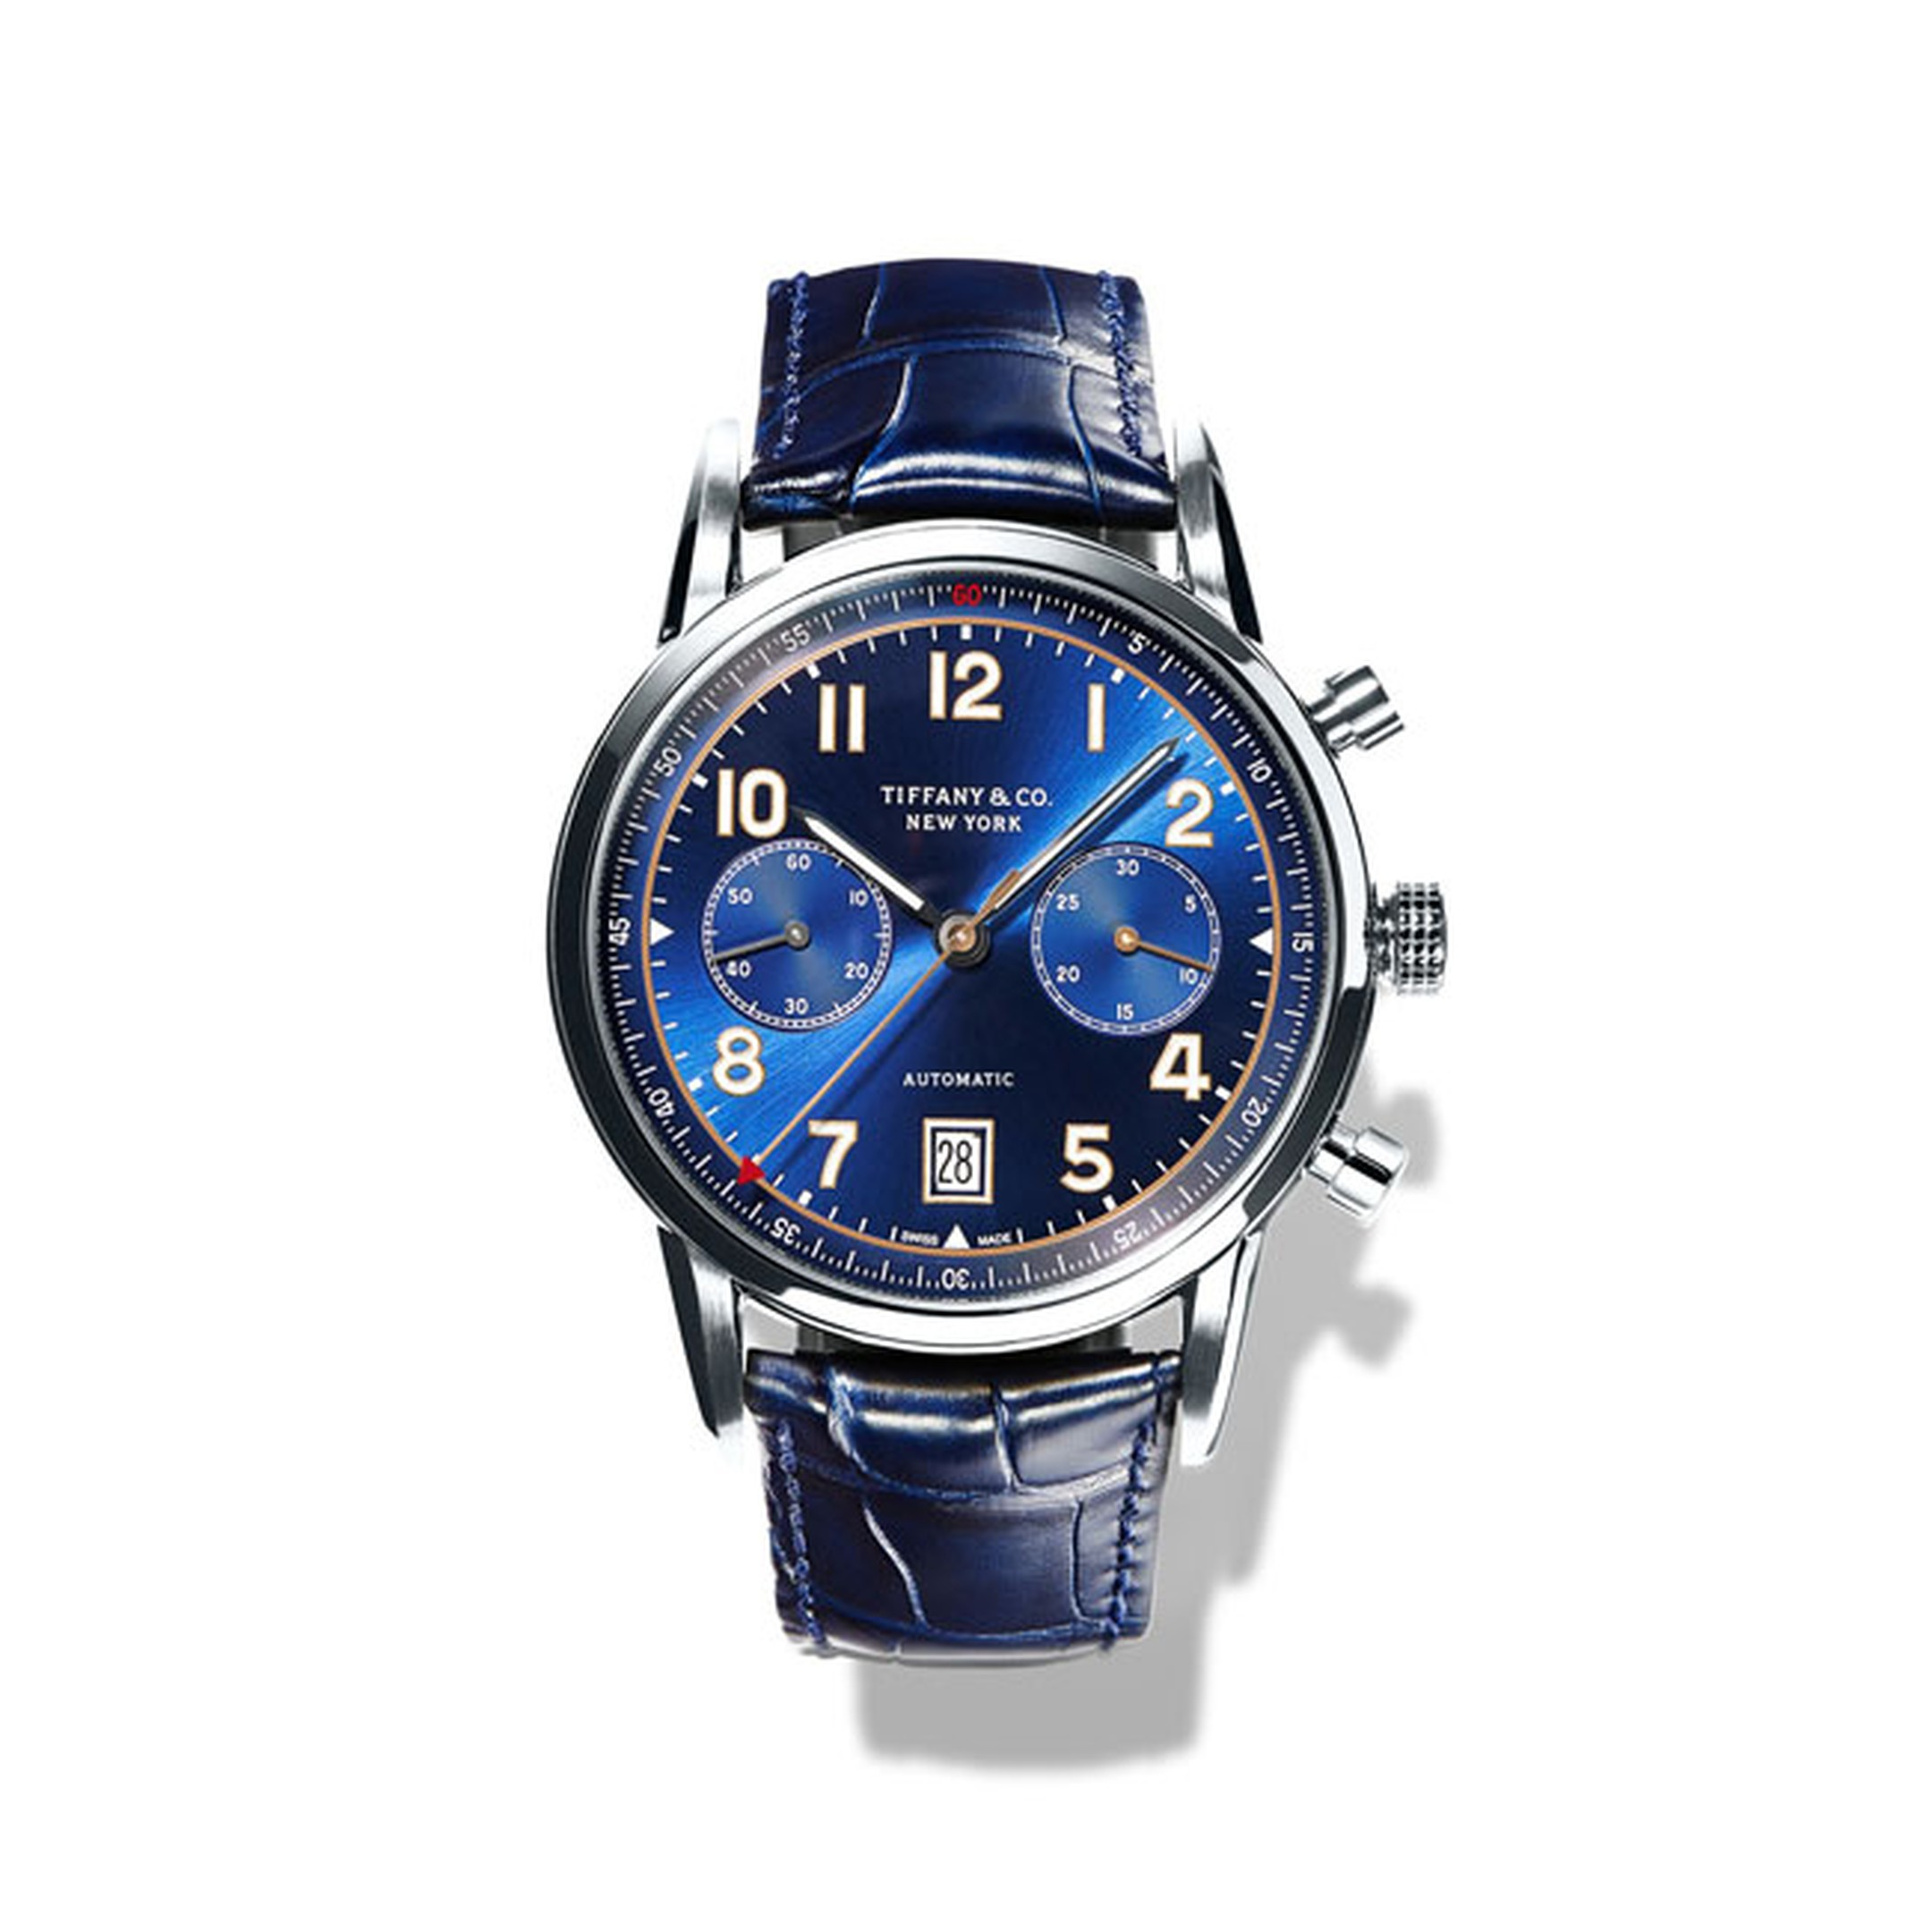 Tiffany CT60 42mm Blue Chronograph mens watch_main